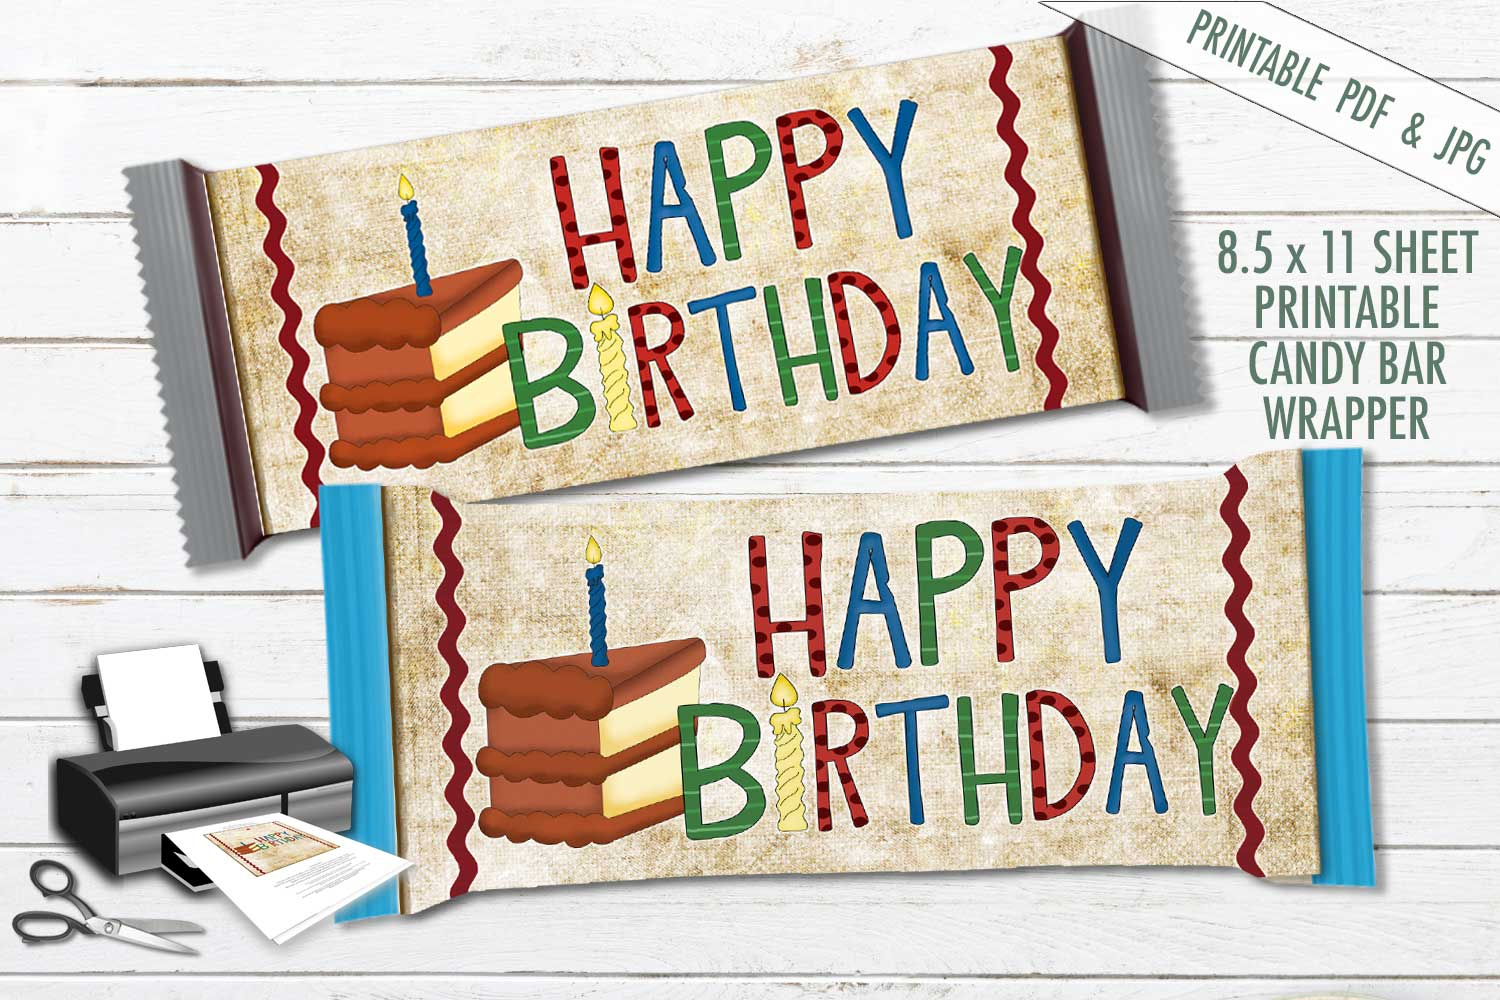 Happy Birthday Candy Bar Wrapper- Hershey Wrapper - PDF JPG example image 1